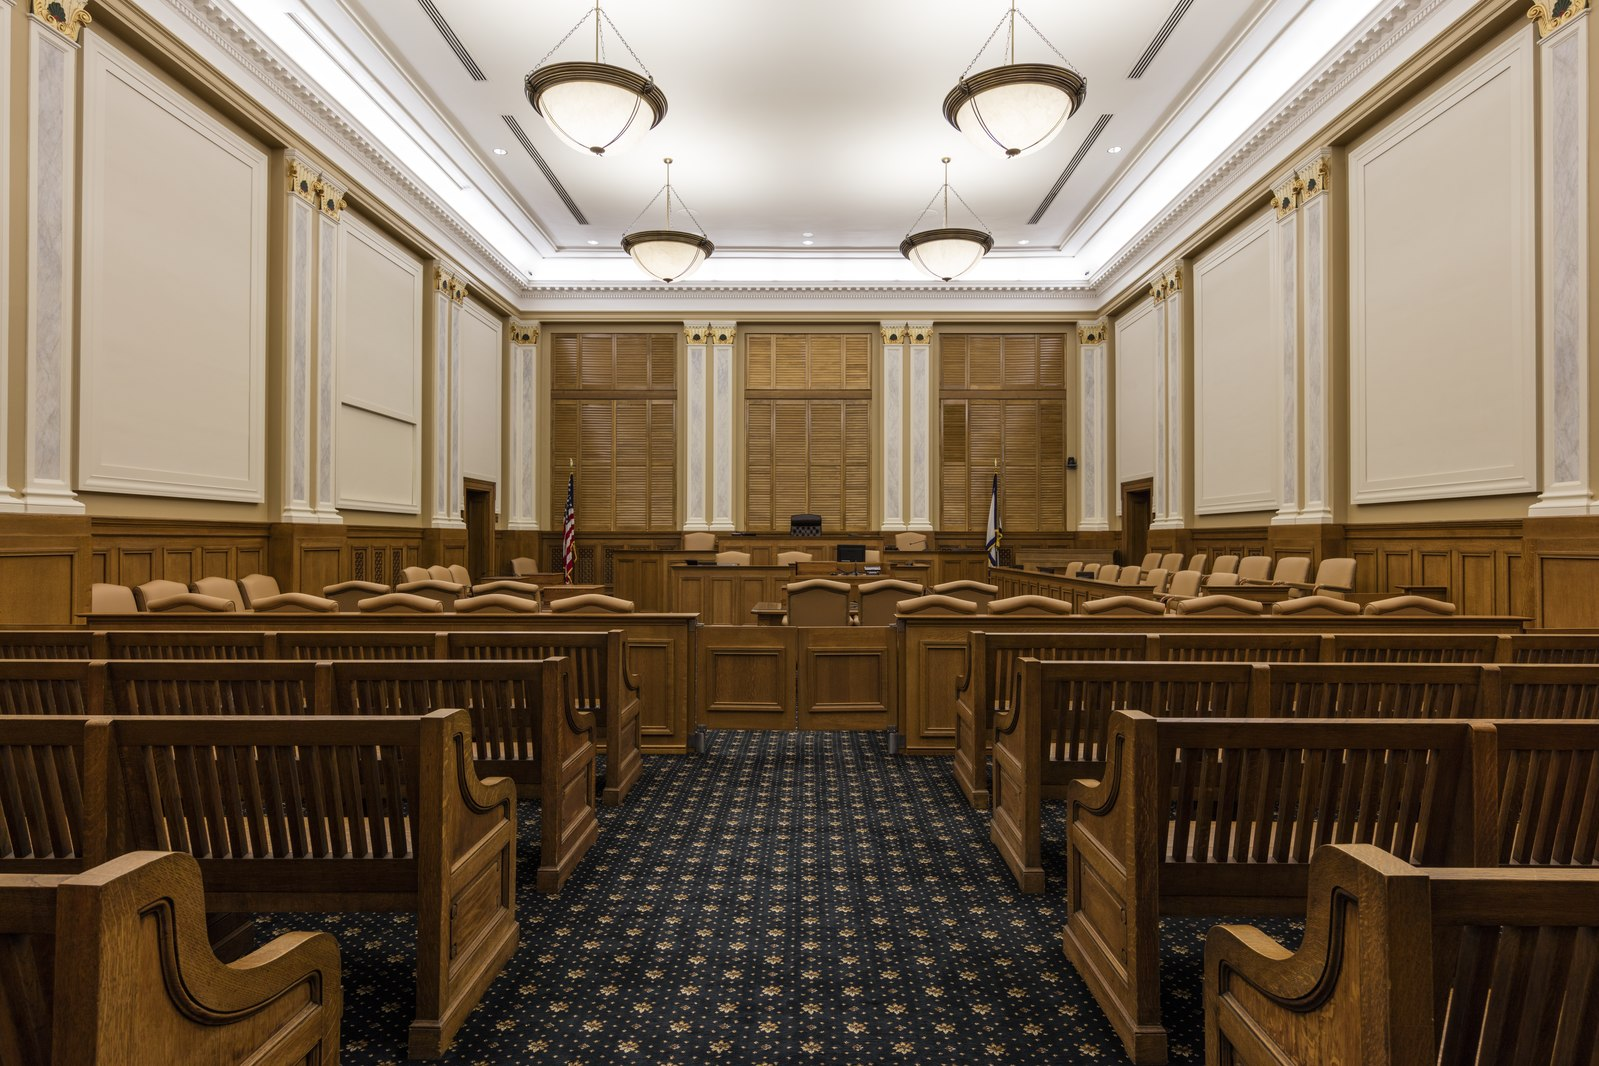 One of the building's courtrooms